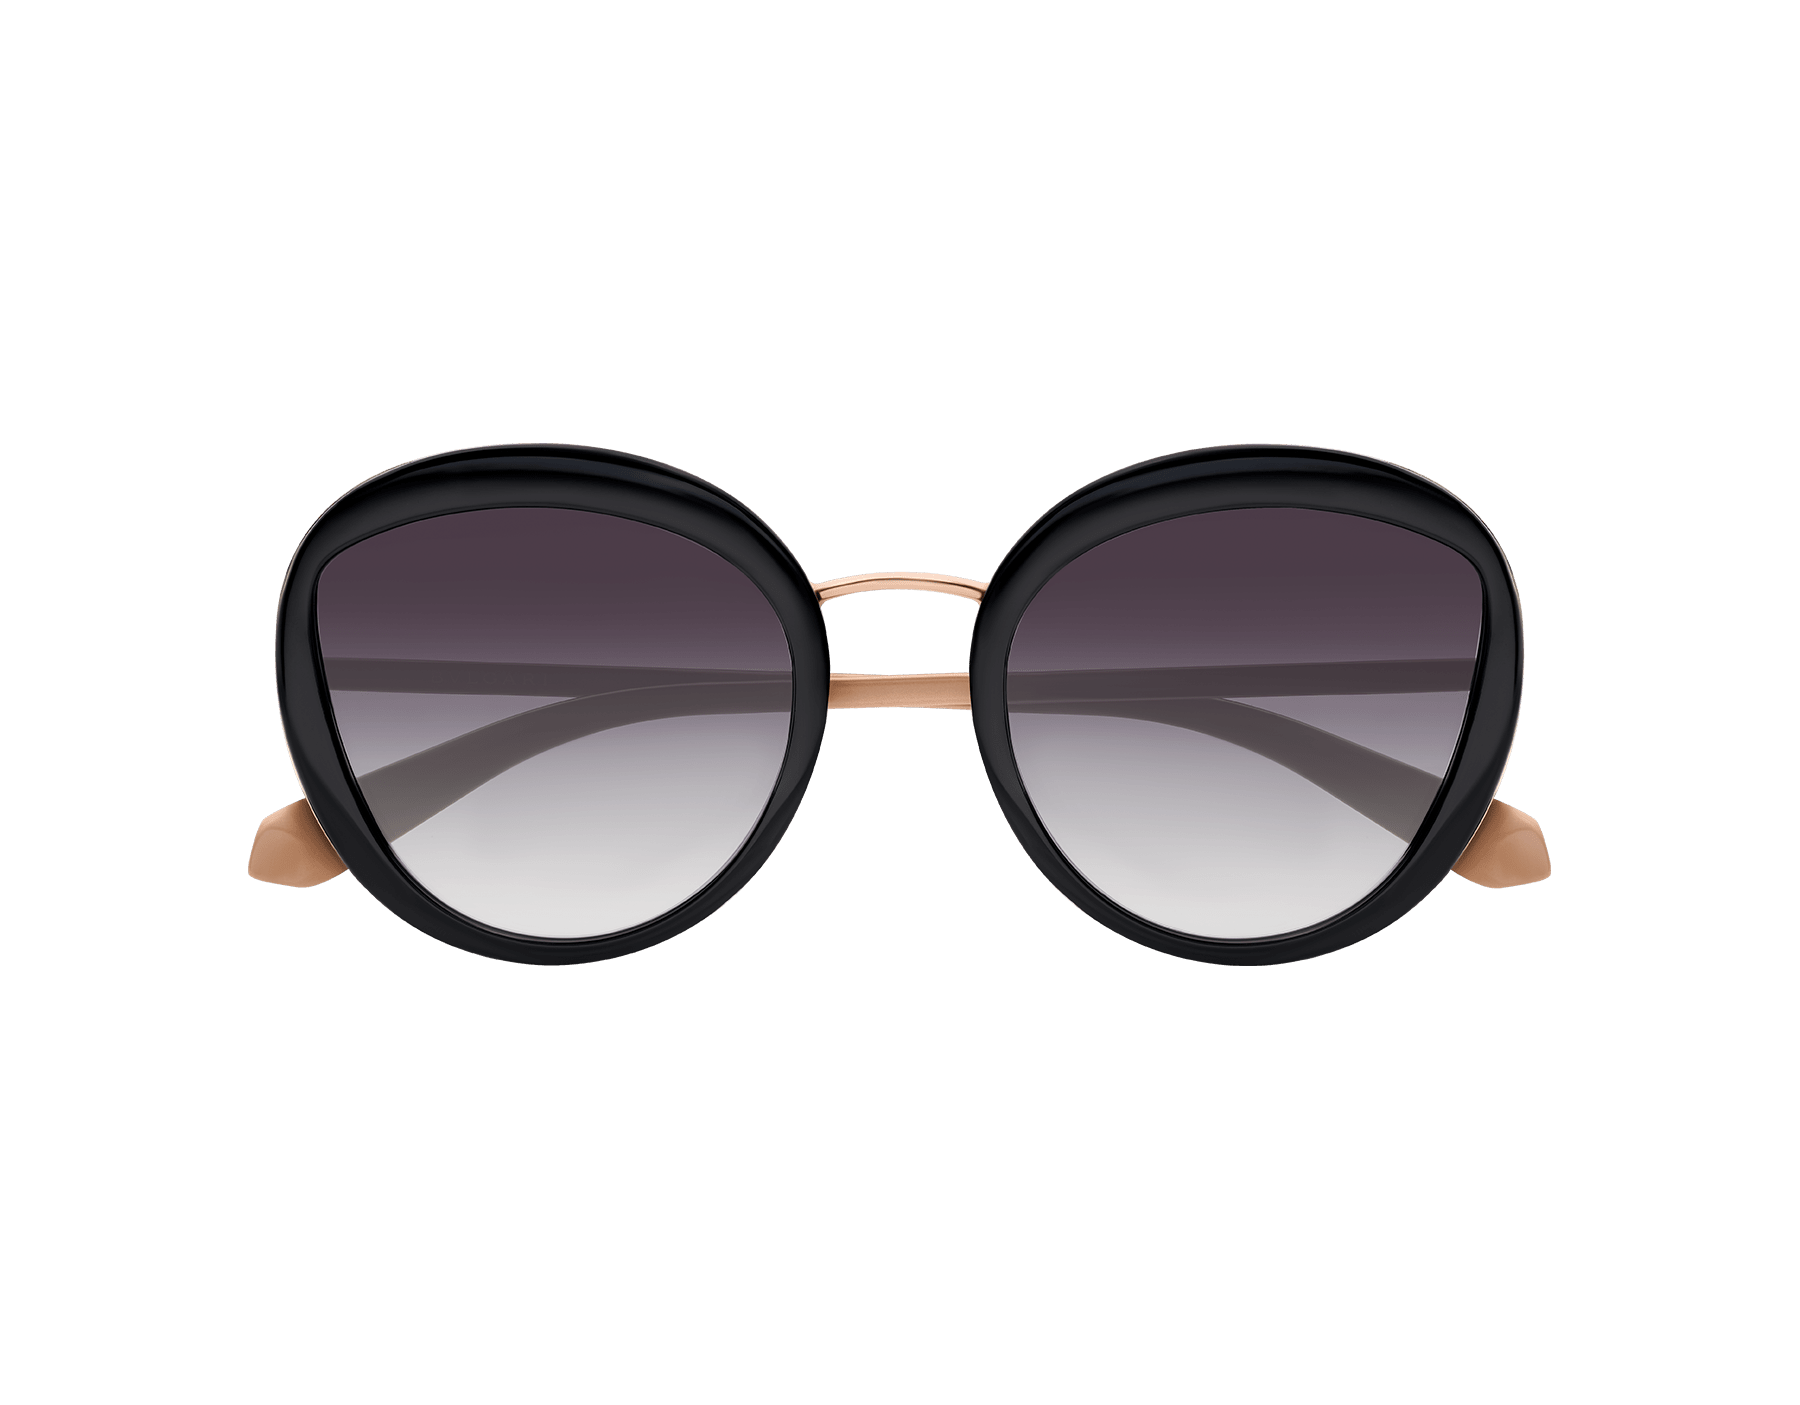 Serpenti round acetate frame Sunglasses with eye-shaped lenses. 903310 image 2